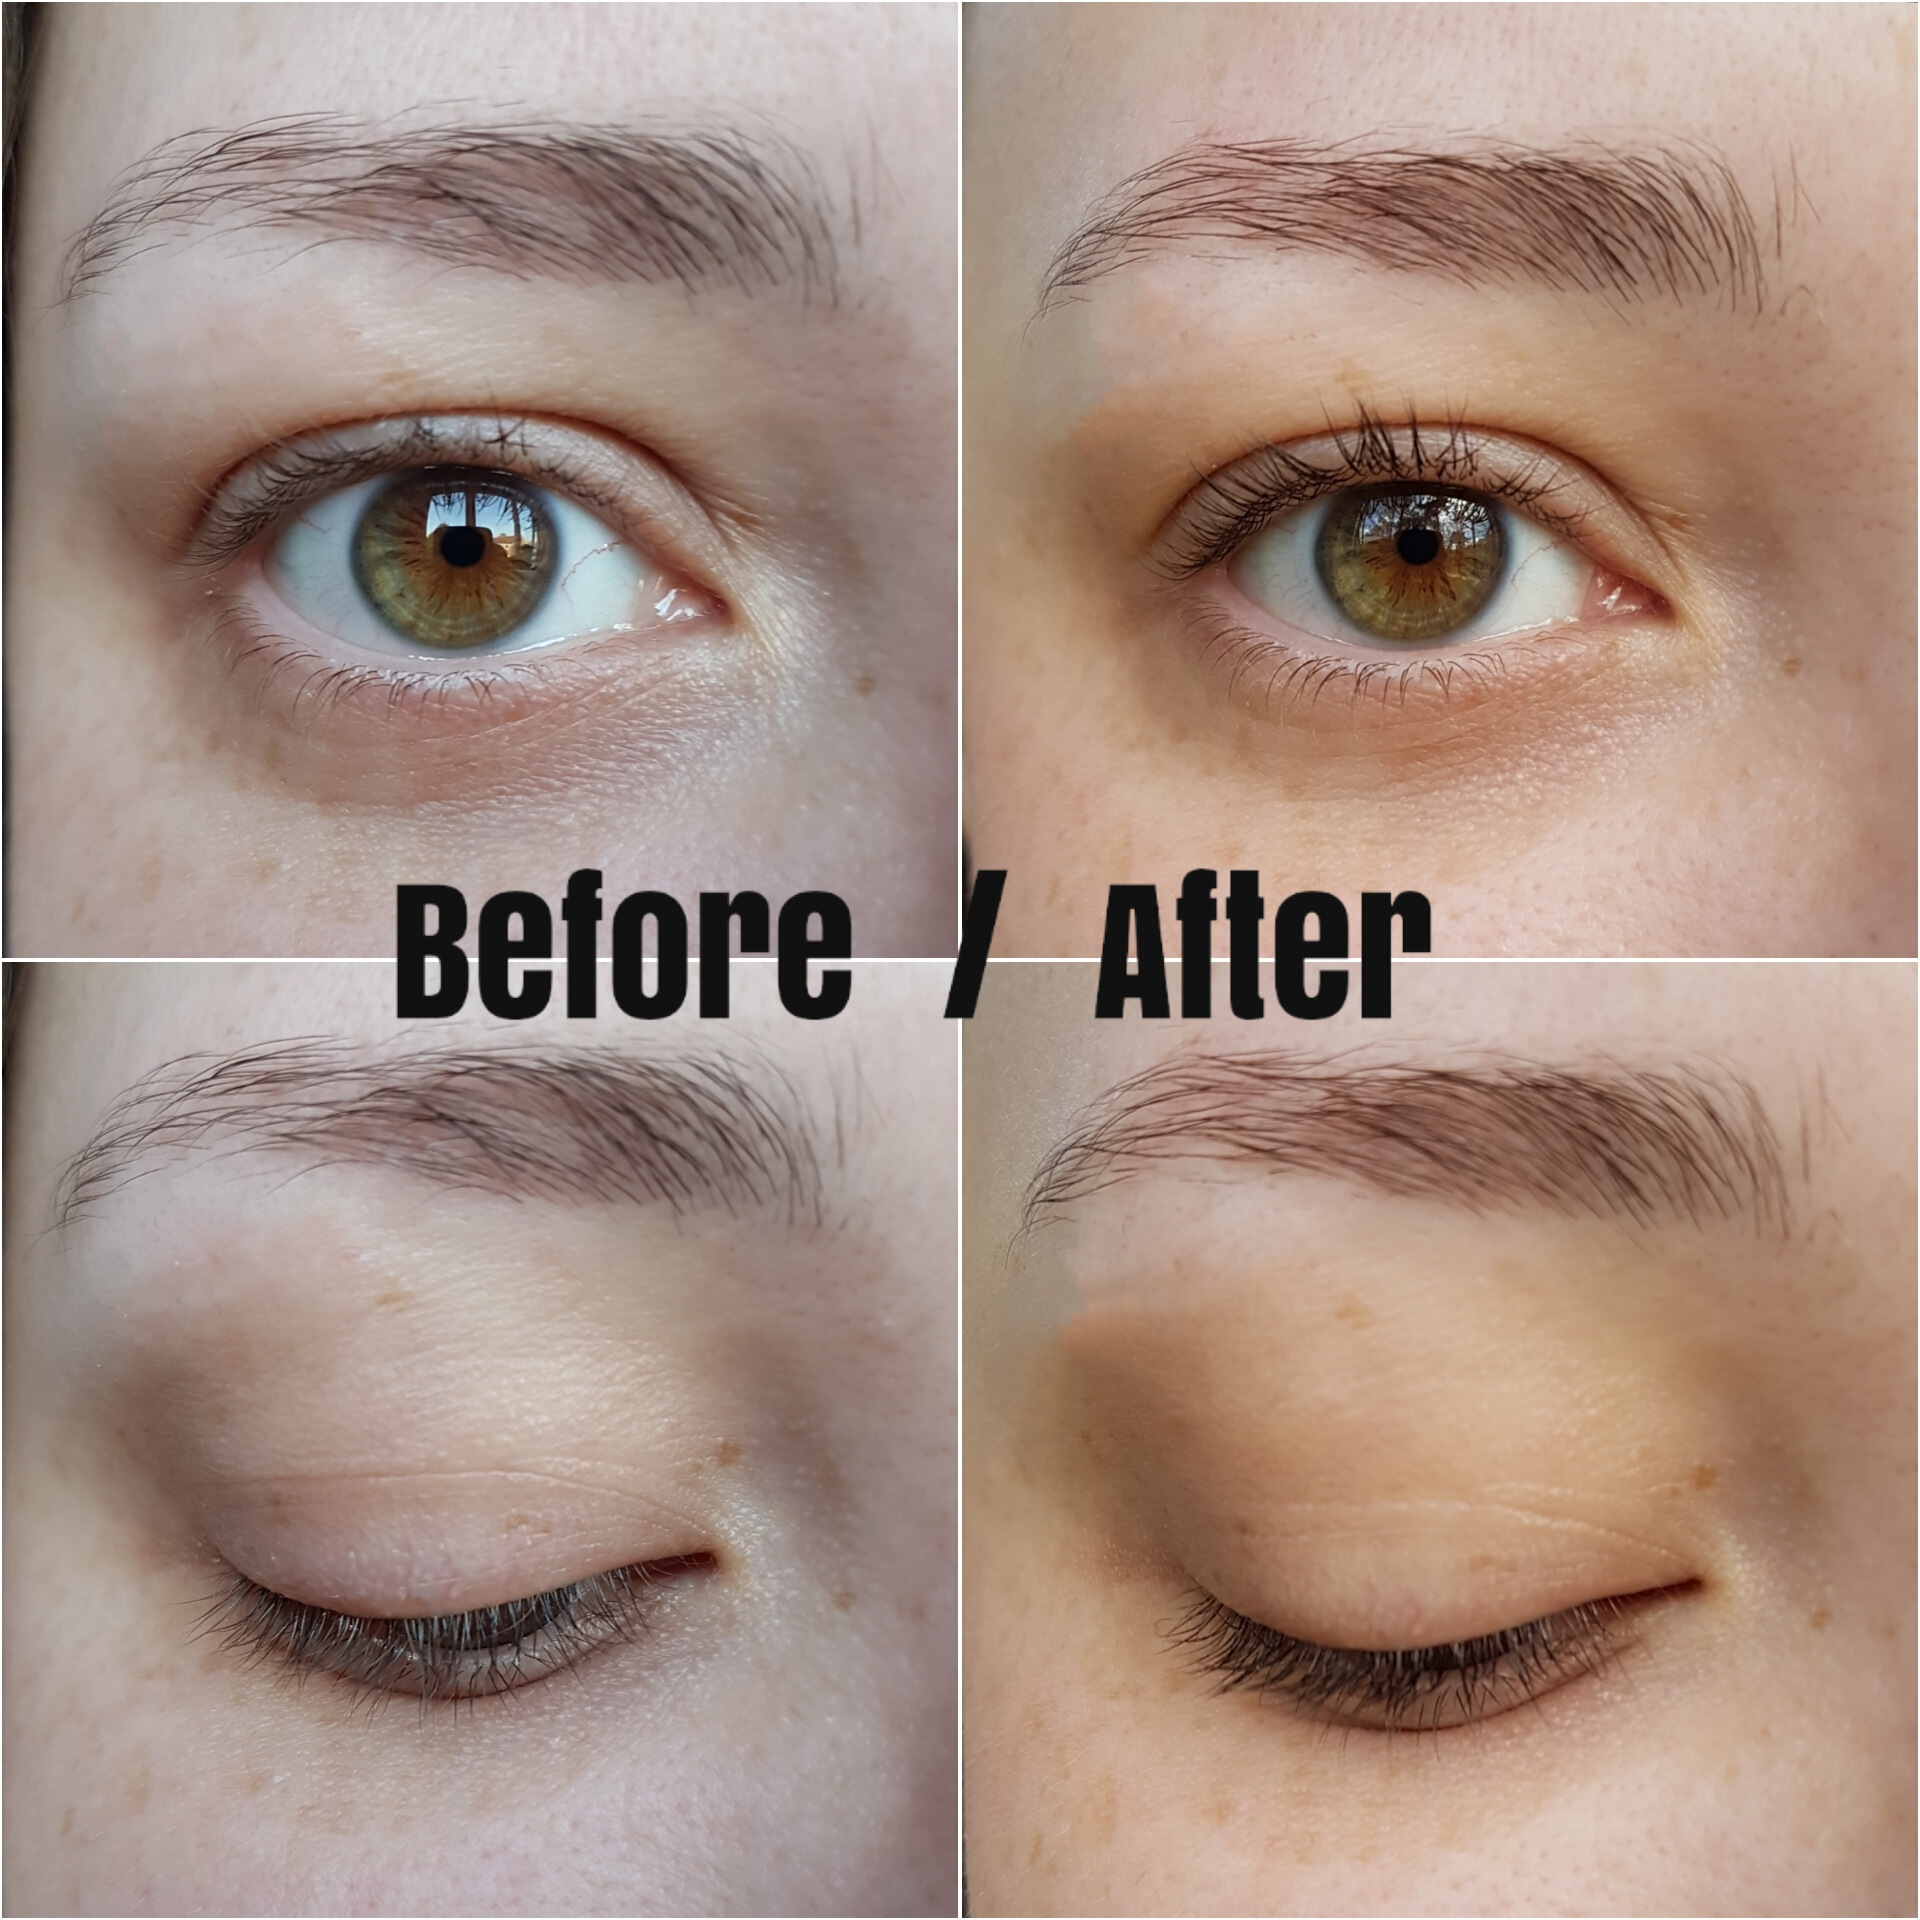 My Experience: LVL Lash Treatment